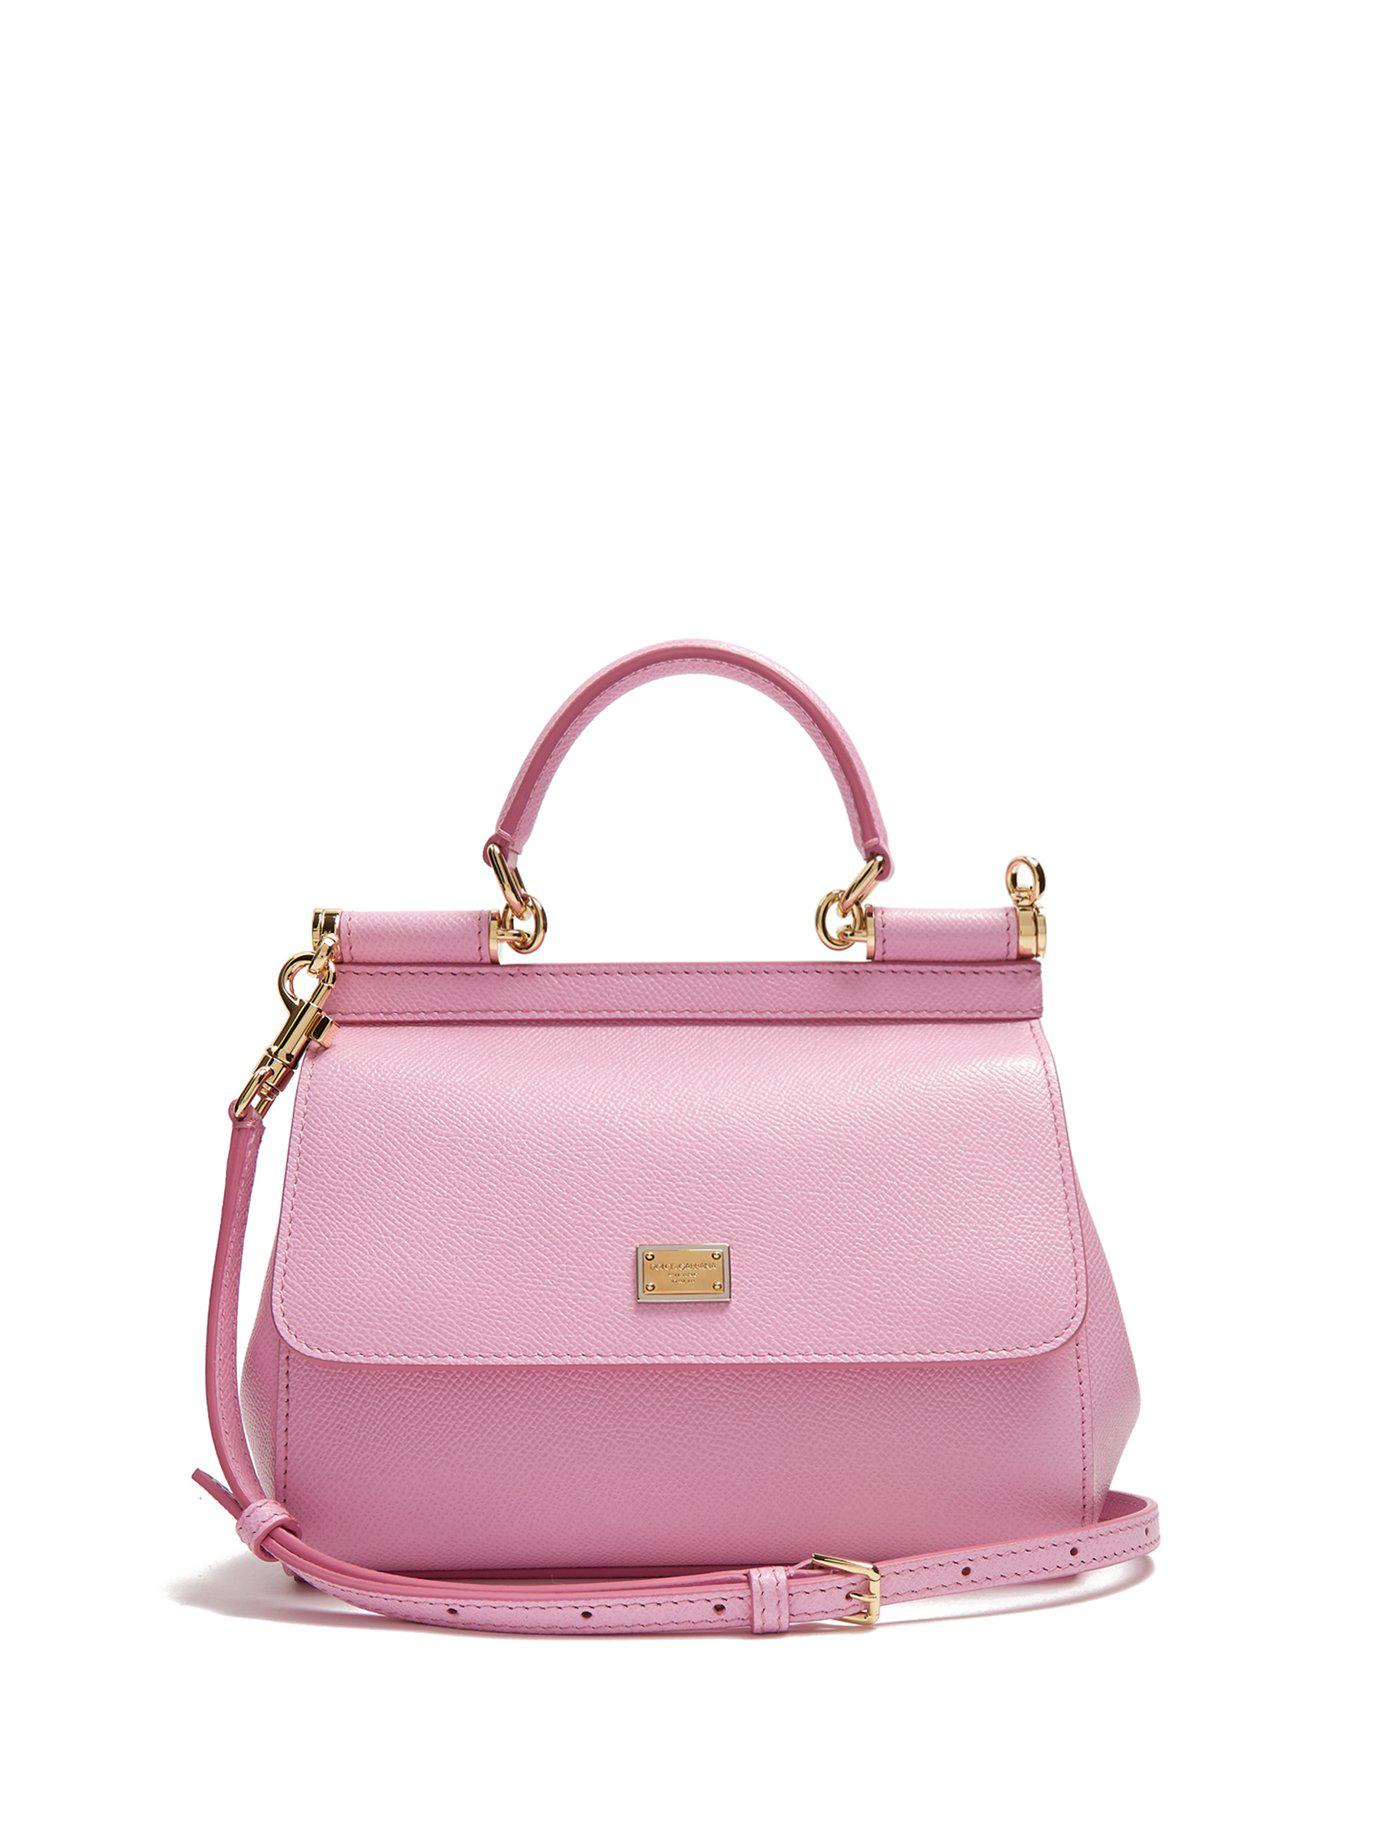 6a80a5fcee1c Lyst - Dolce   Gabbana Sicily Small Dauphine Leather Bag in Pink ...